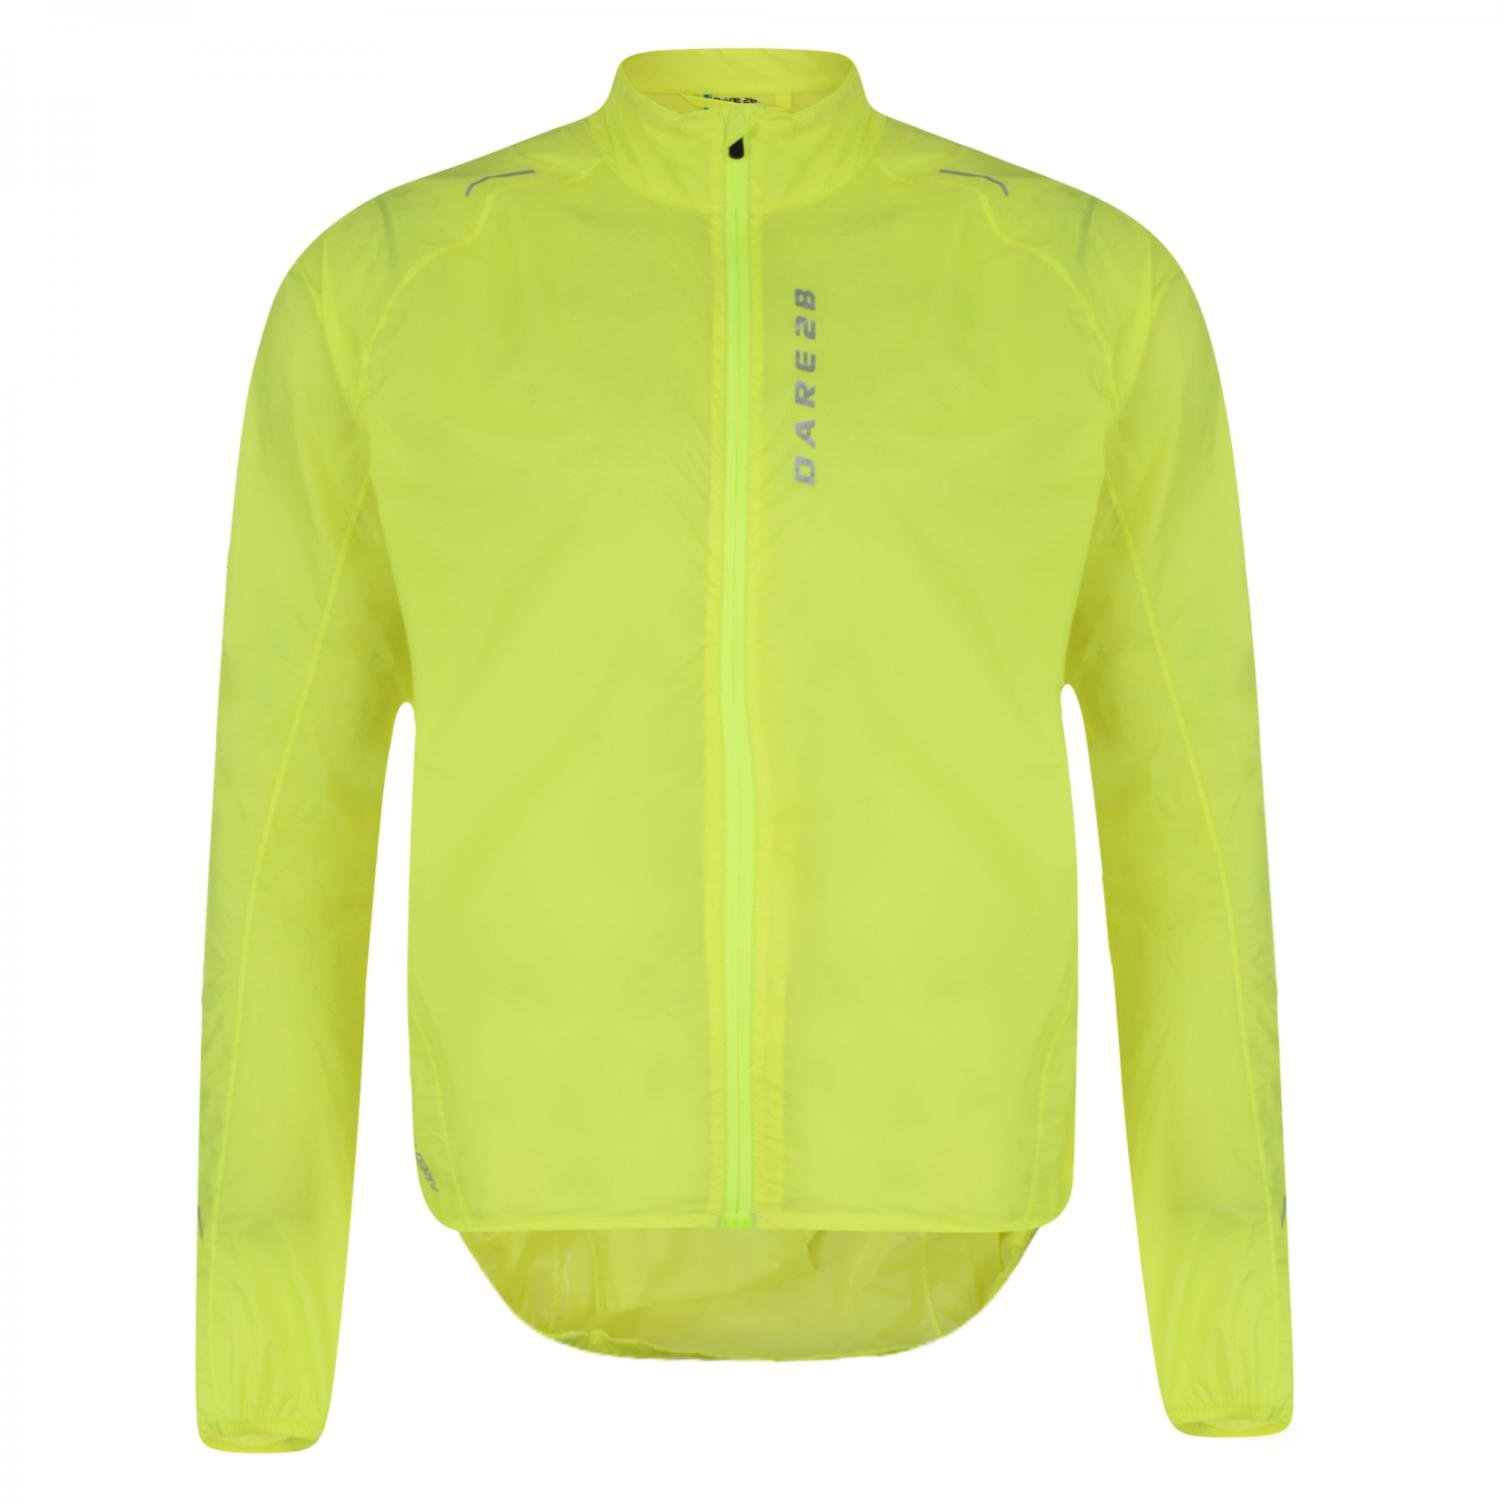 2X-Large Dare 2b Mens Ensphere Jacket Fluorescent Yellow